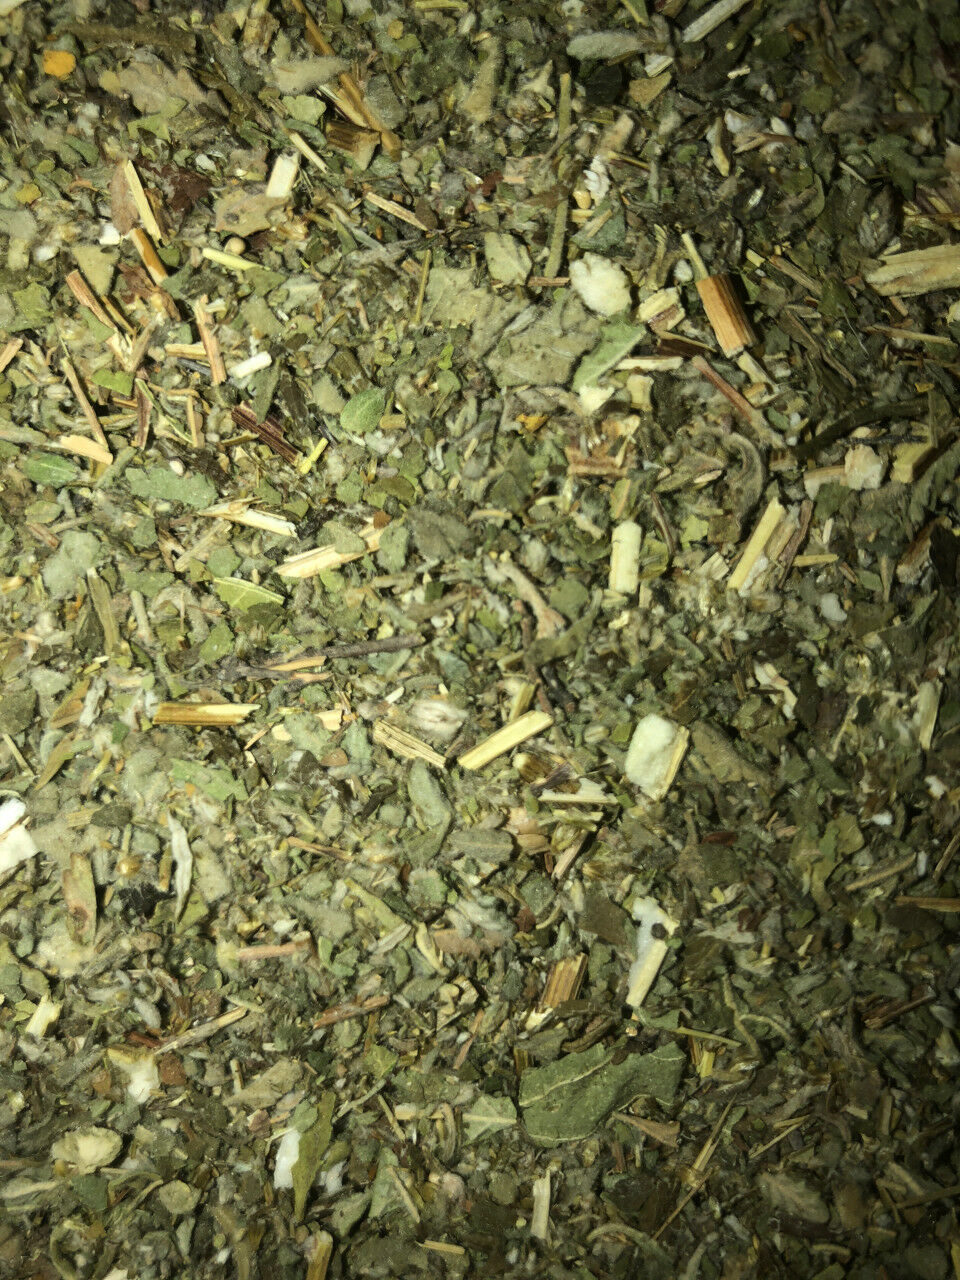 Herbal Blend Damiana Mugwort Marshmallow 1/4 Lb 100 Natural Spice Discounters - $16.95